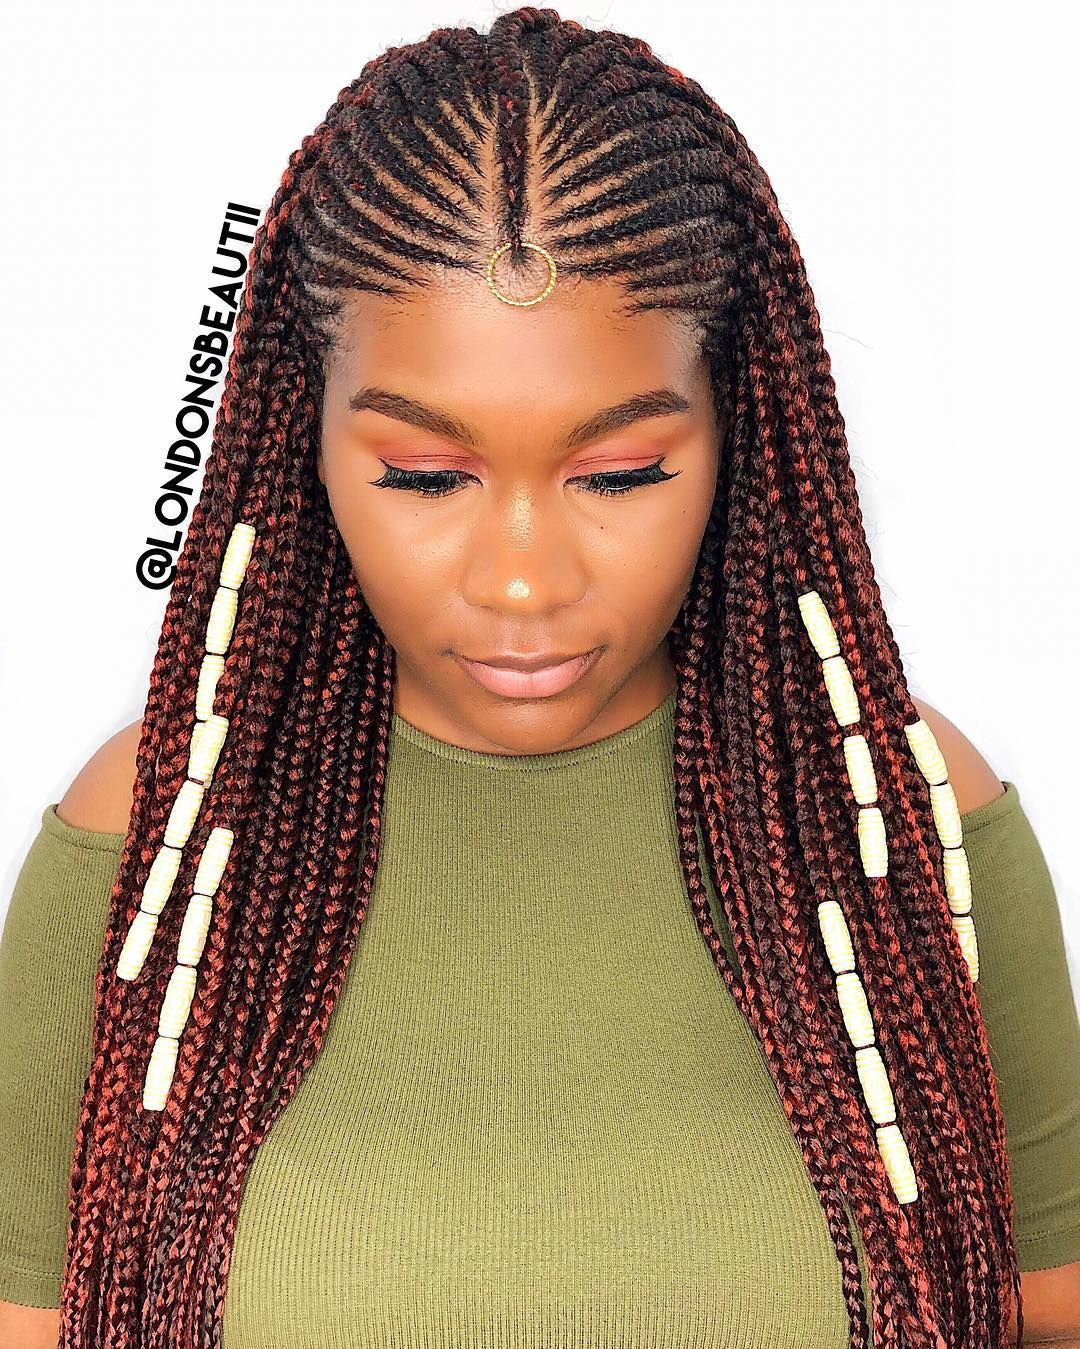 Hairdresser In Jamaica: Pin By Amma Mama On Styled By London's Beautii Hair Salon